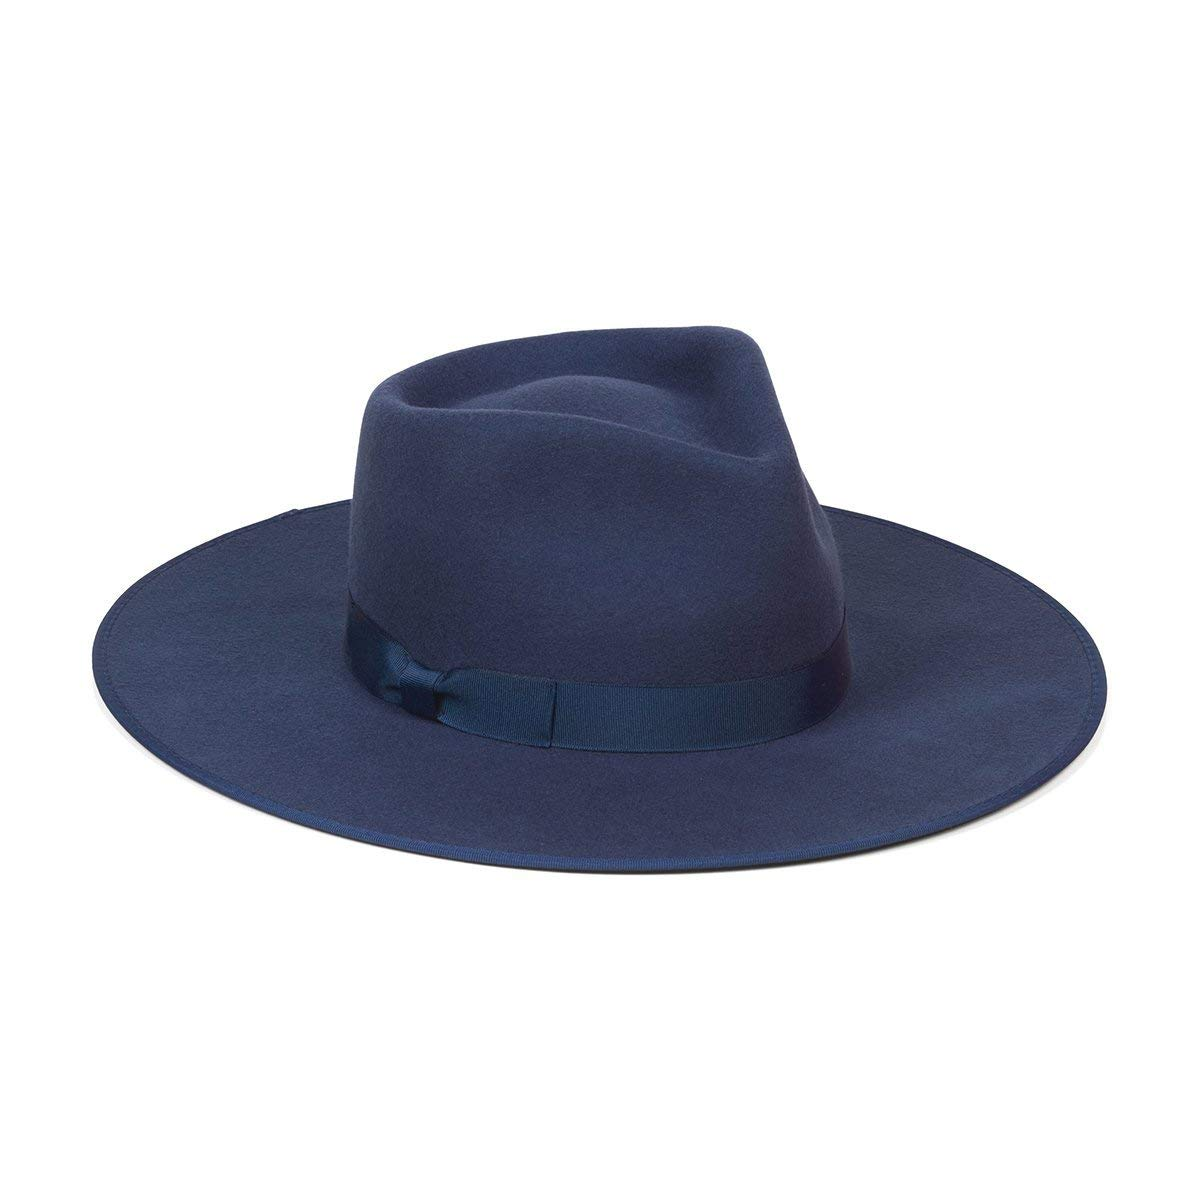 Lack of Color Women's Navy Rancher Wool Fedora Hat (Navy, Small (55 cm)) by Lack of Color